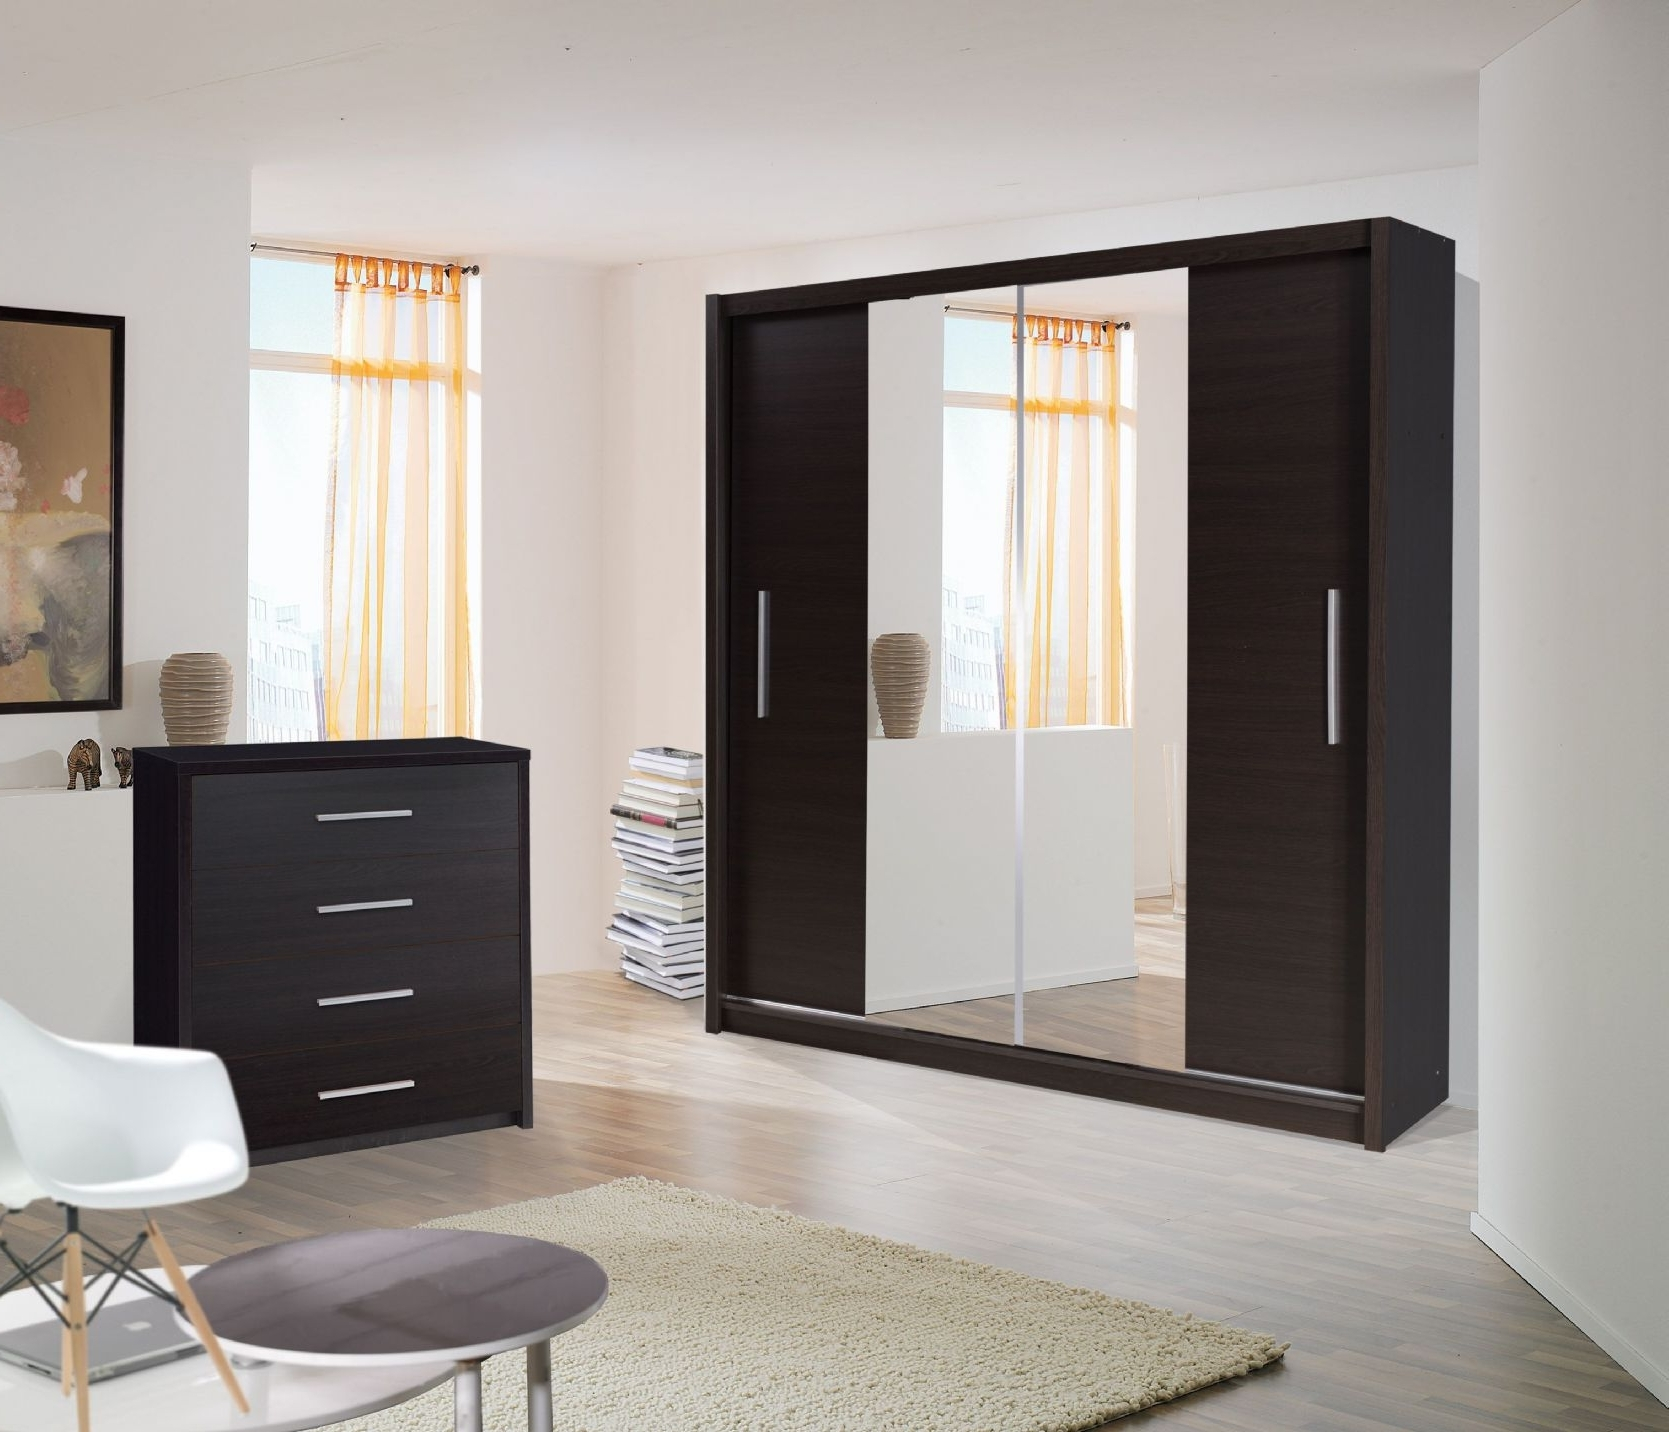 2017 Black Gloss Wardrobes Throughout Mirror Design Ideas: Black Gloss Wardrobes With Mirrored Sliding (View 1 of 15)